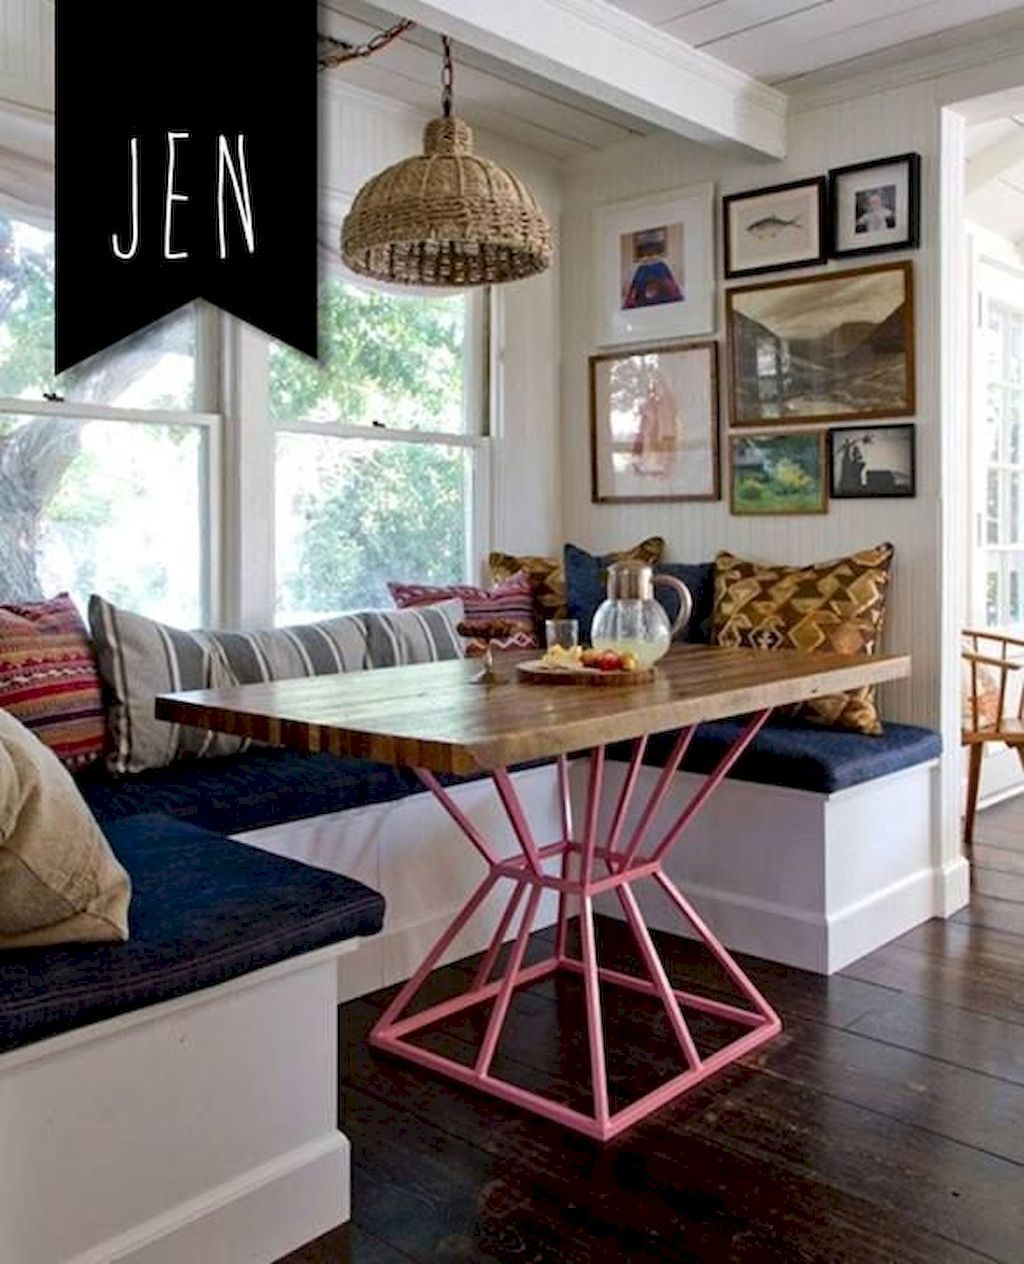 Dining Room Corner Decorating Ideas Space Saving Solutions: Pin By Robin DuVall On Ideas For The House